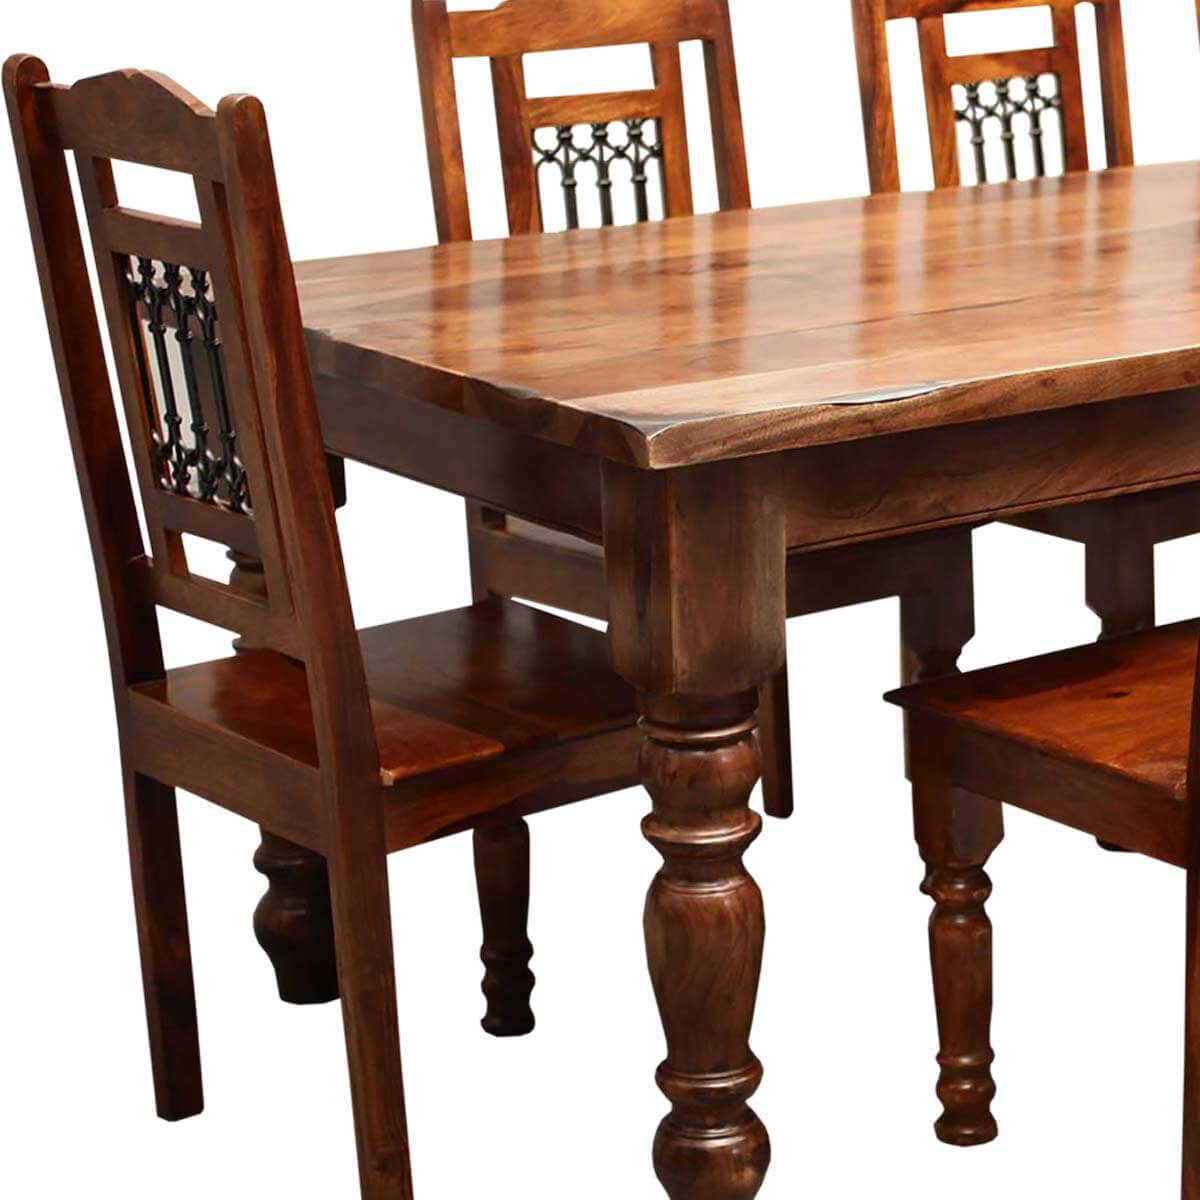 Unfinished Dining Room Chairs Rustic Furniture Solid Wood Large Dining Table And 8 Chair Set